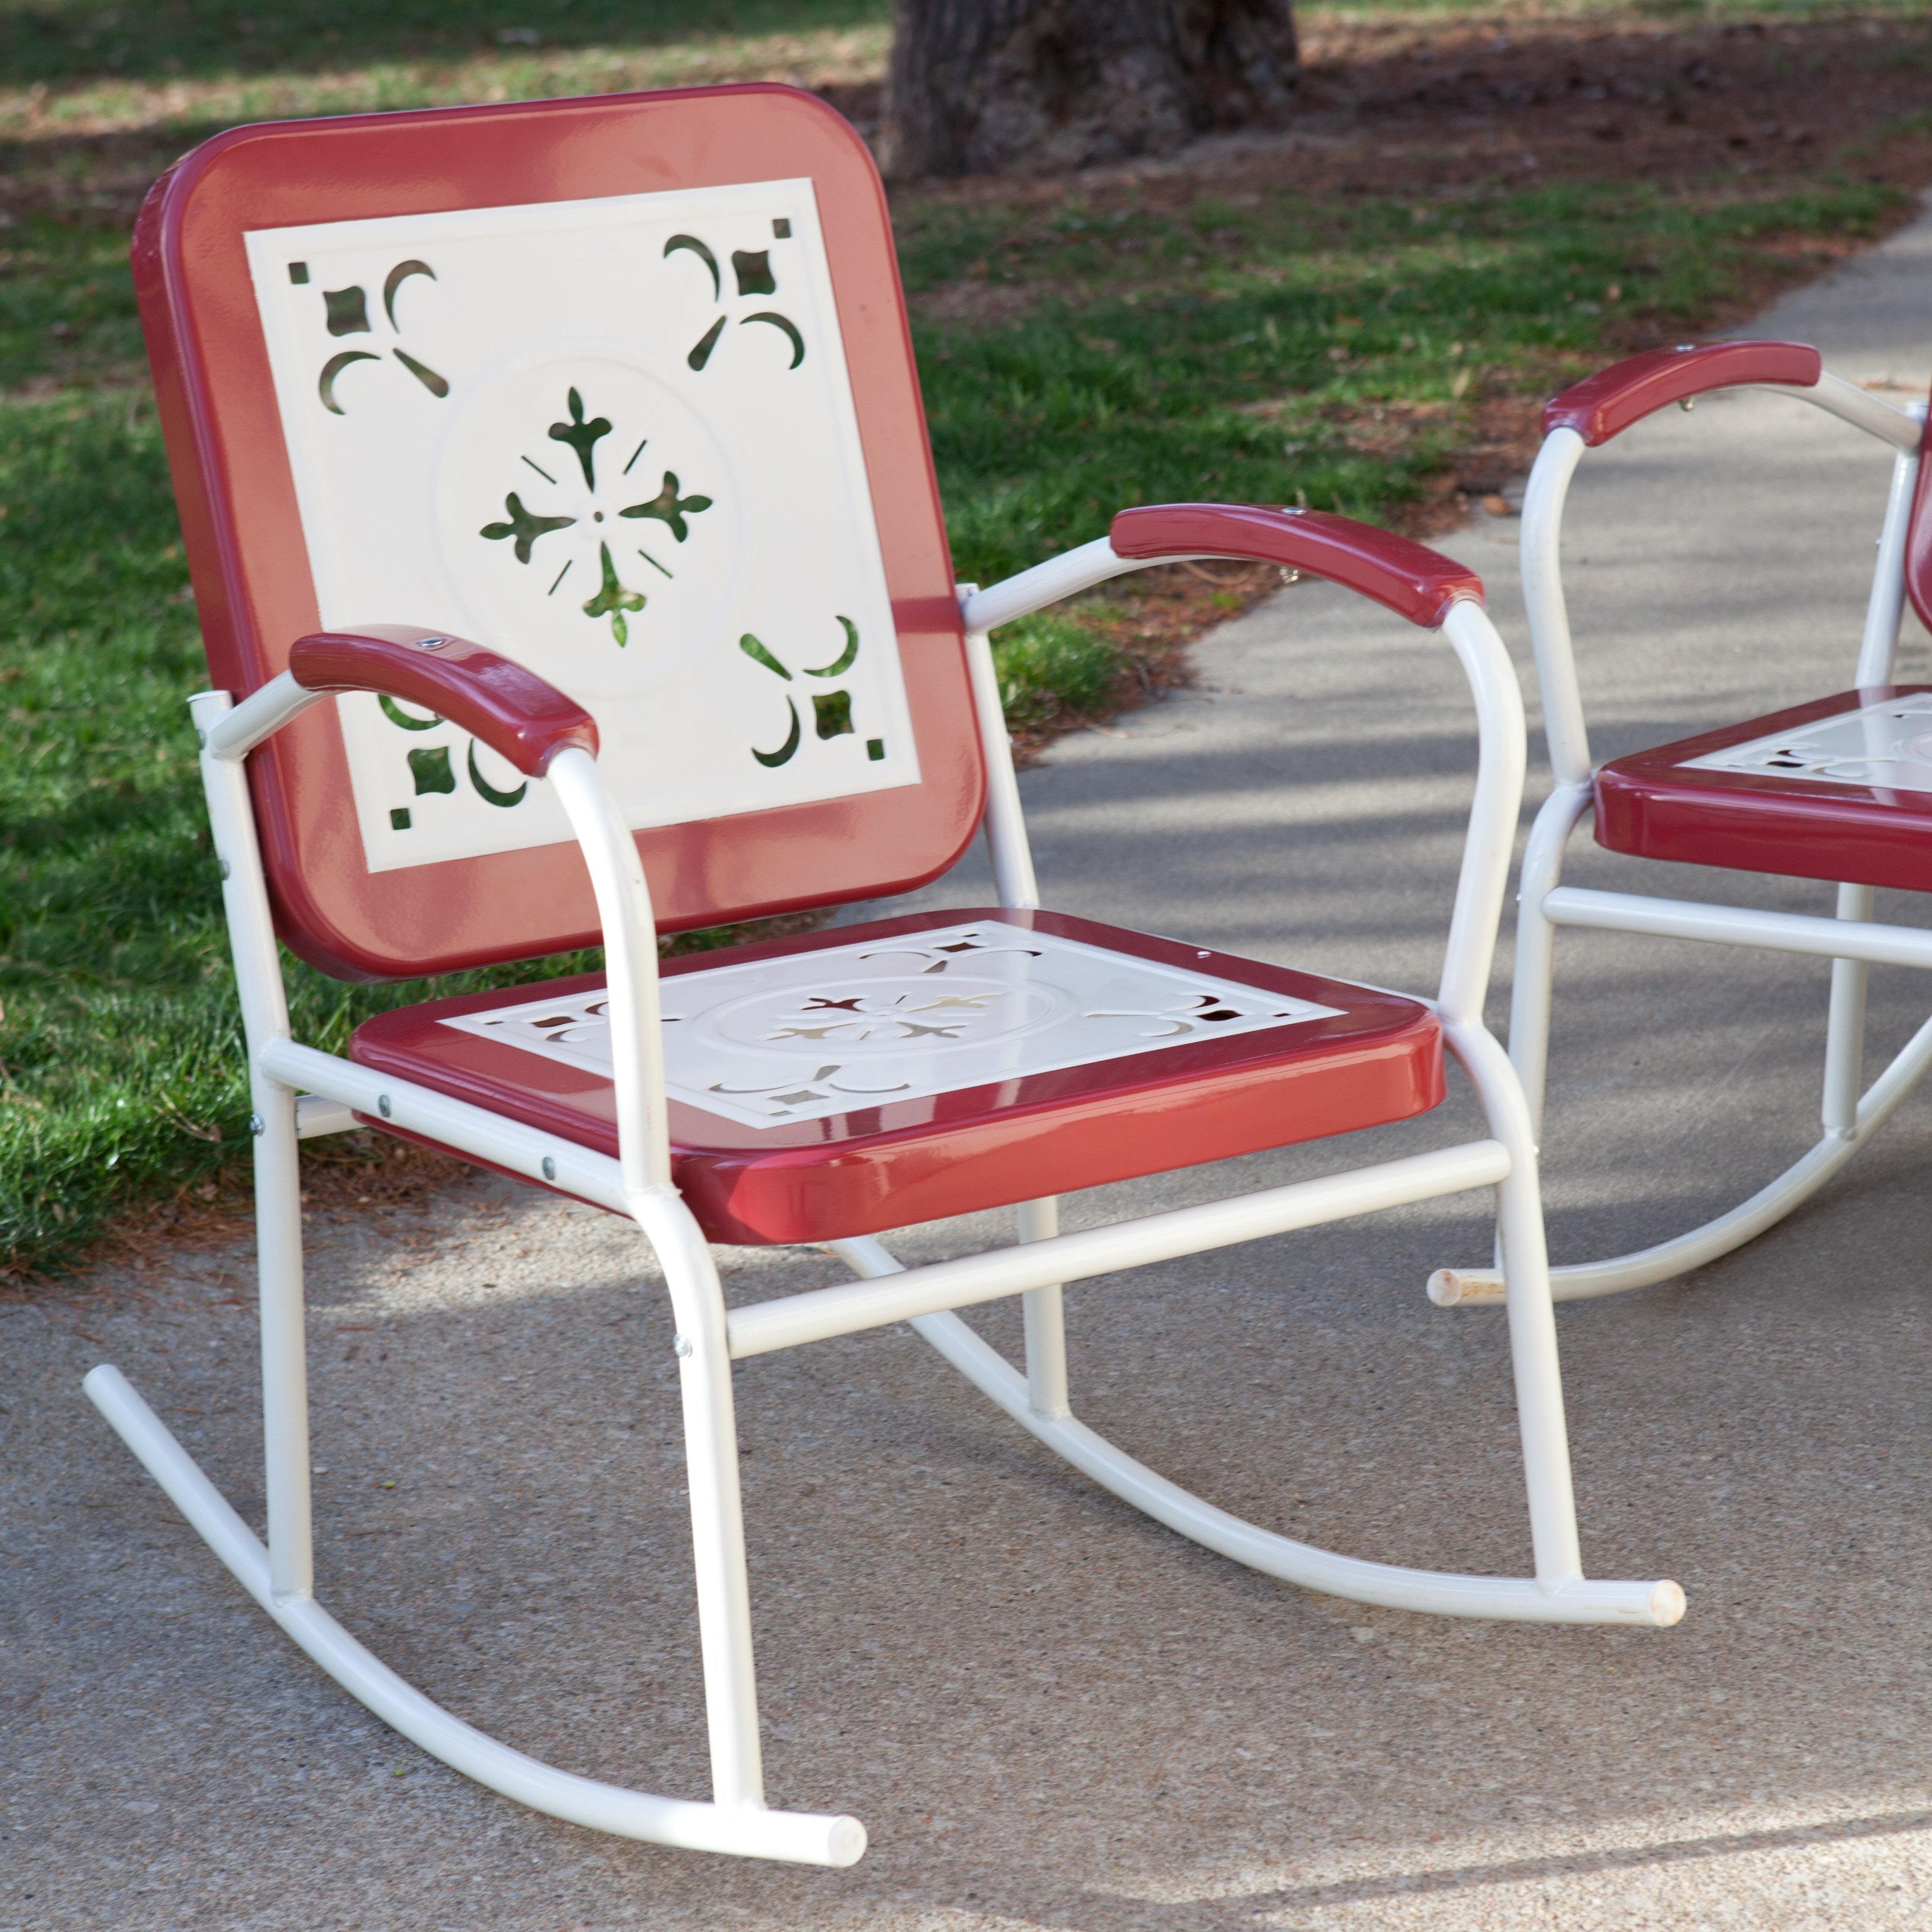 Old Metal Outdoor Rocking Chairs – Outdoor Designs Inside Most Current Retro Outdoor Rocking Chairs (View 2 of 20)